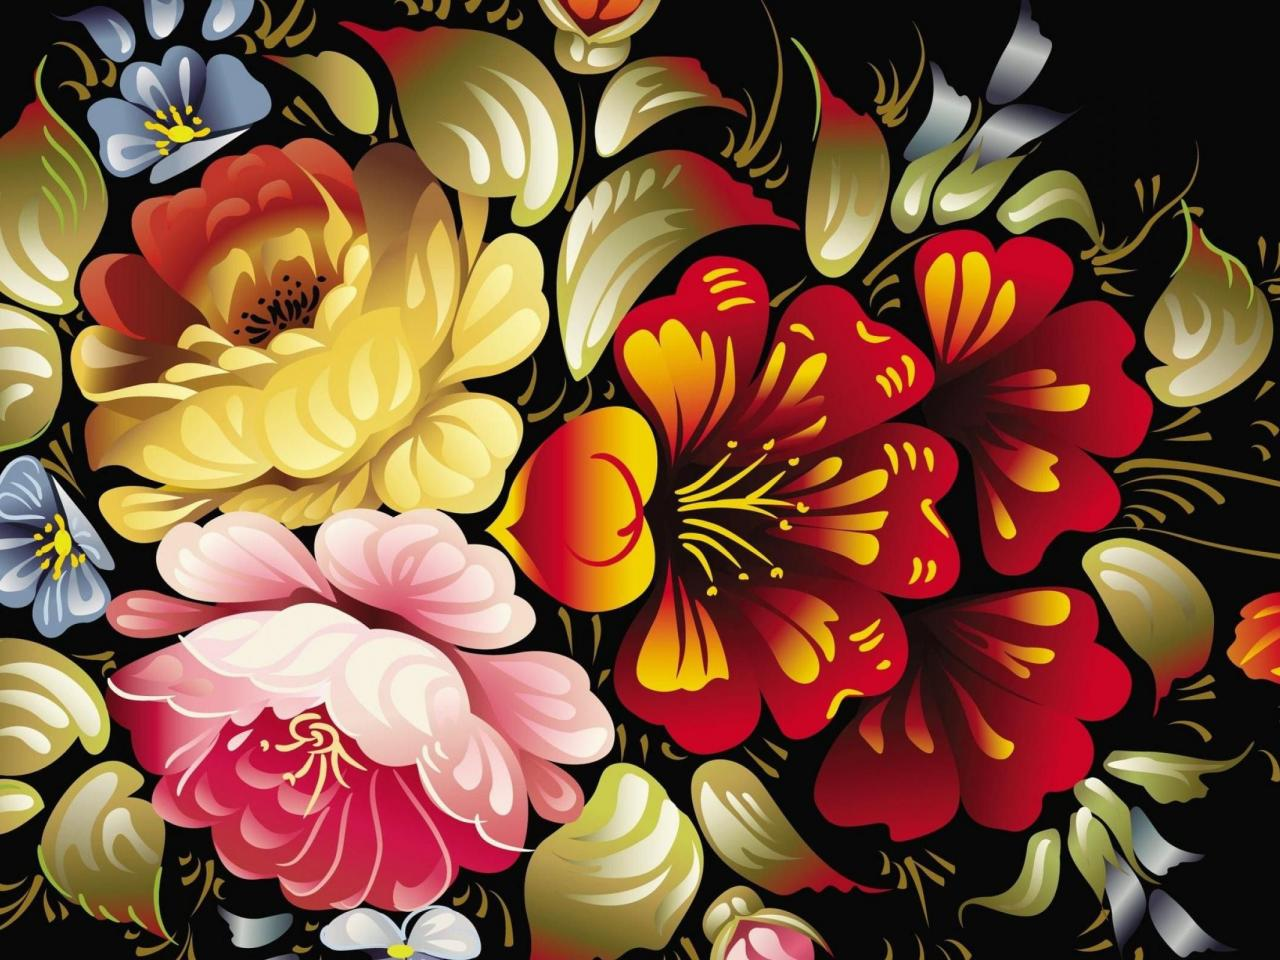 Free Colorful Flower Wallpaper Downloads: Abstract Art Desktop Wallpaper With Colorful Flower In 3D